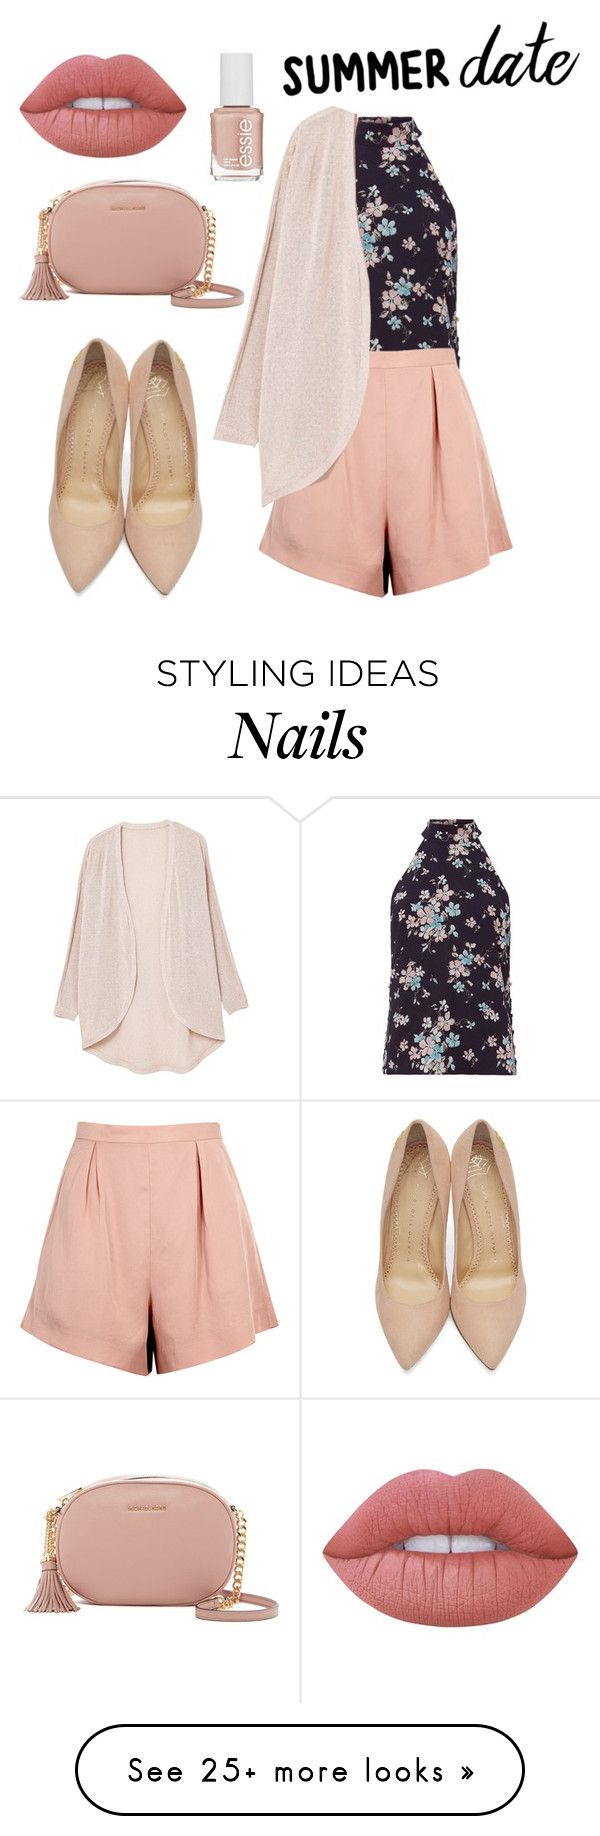 """Untitled #231"" by adzea on Polyvore featuring Exclusive for Intermix, Finders Keepers, MANGO, Charlotte Olympia, MICHAEL Michael Kors, Lime Crime and Essie"